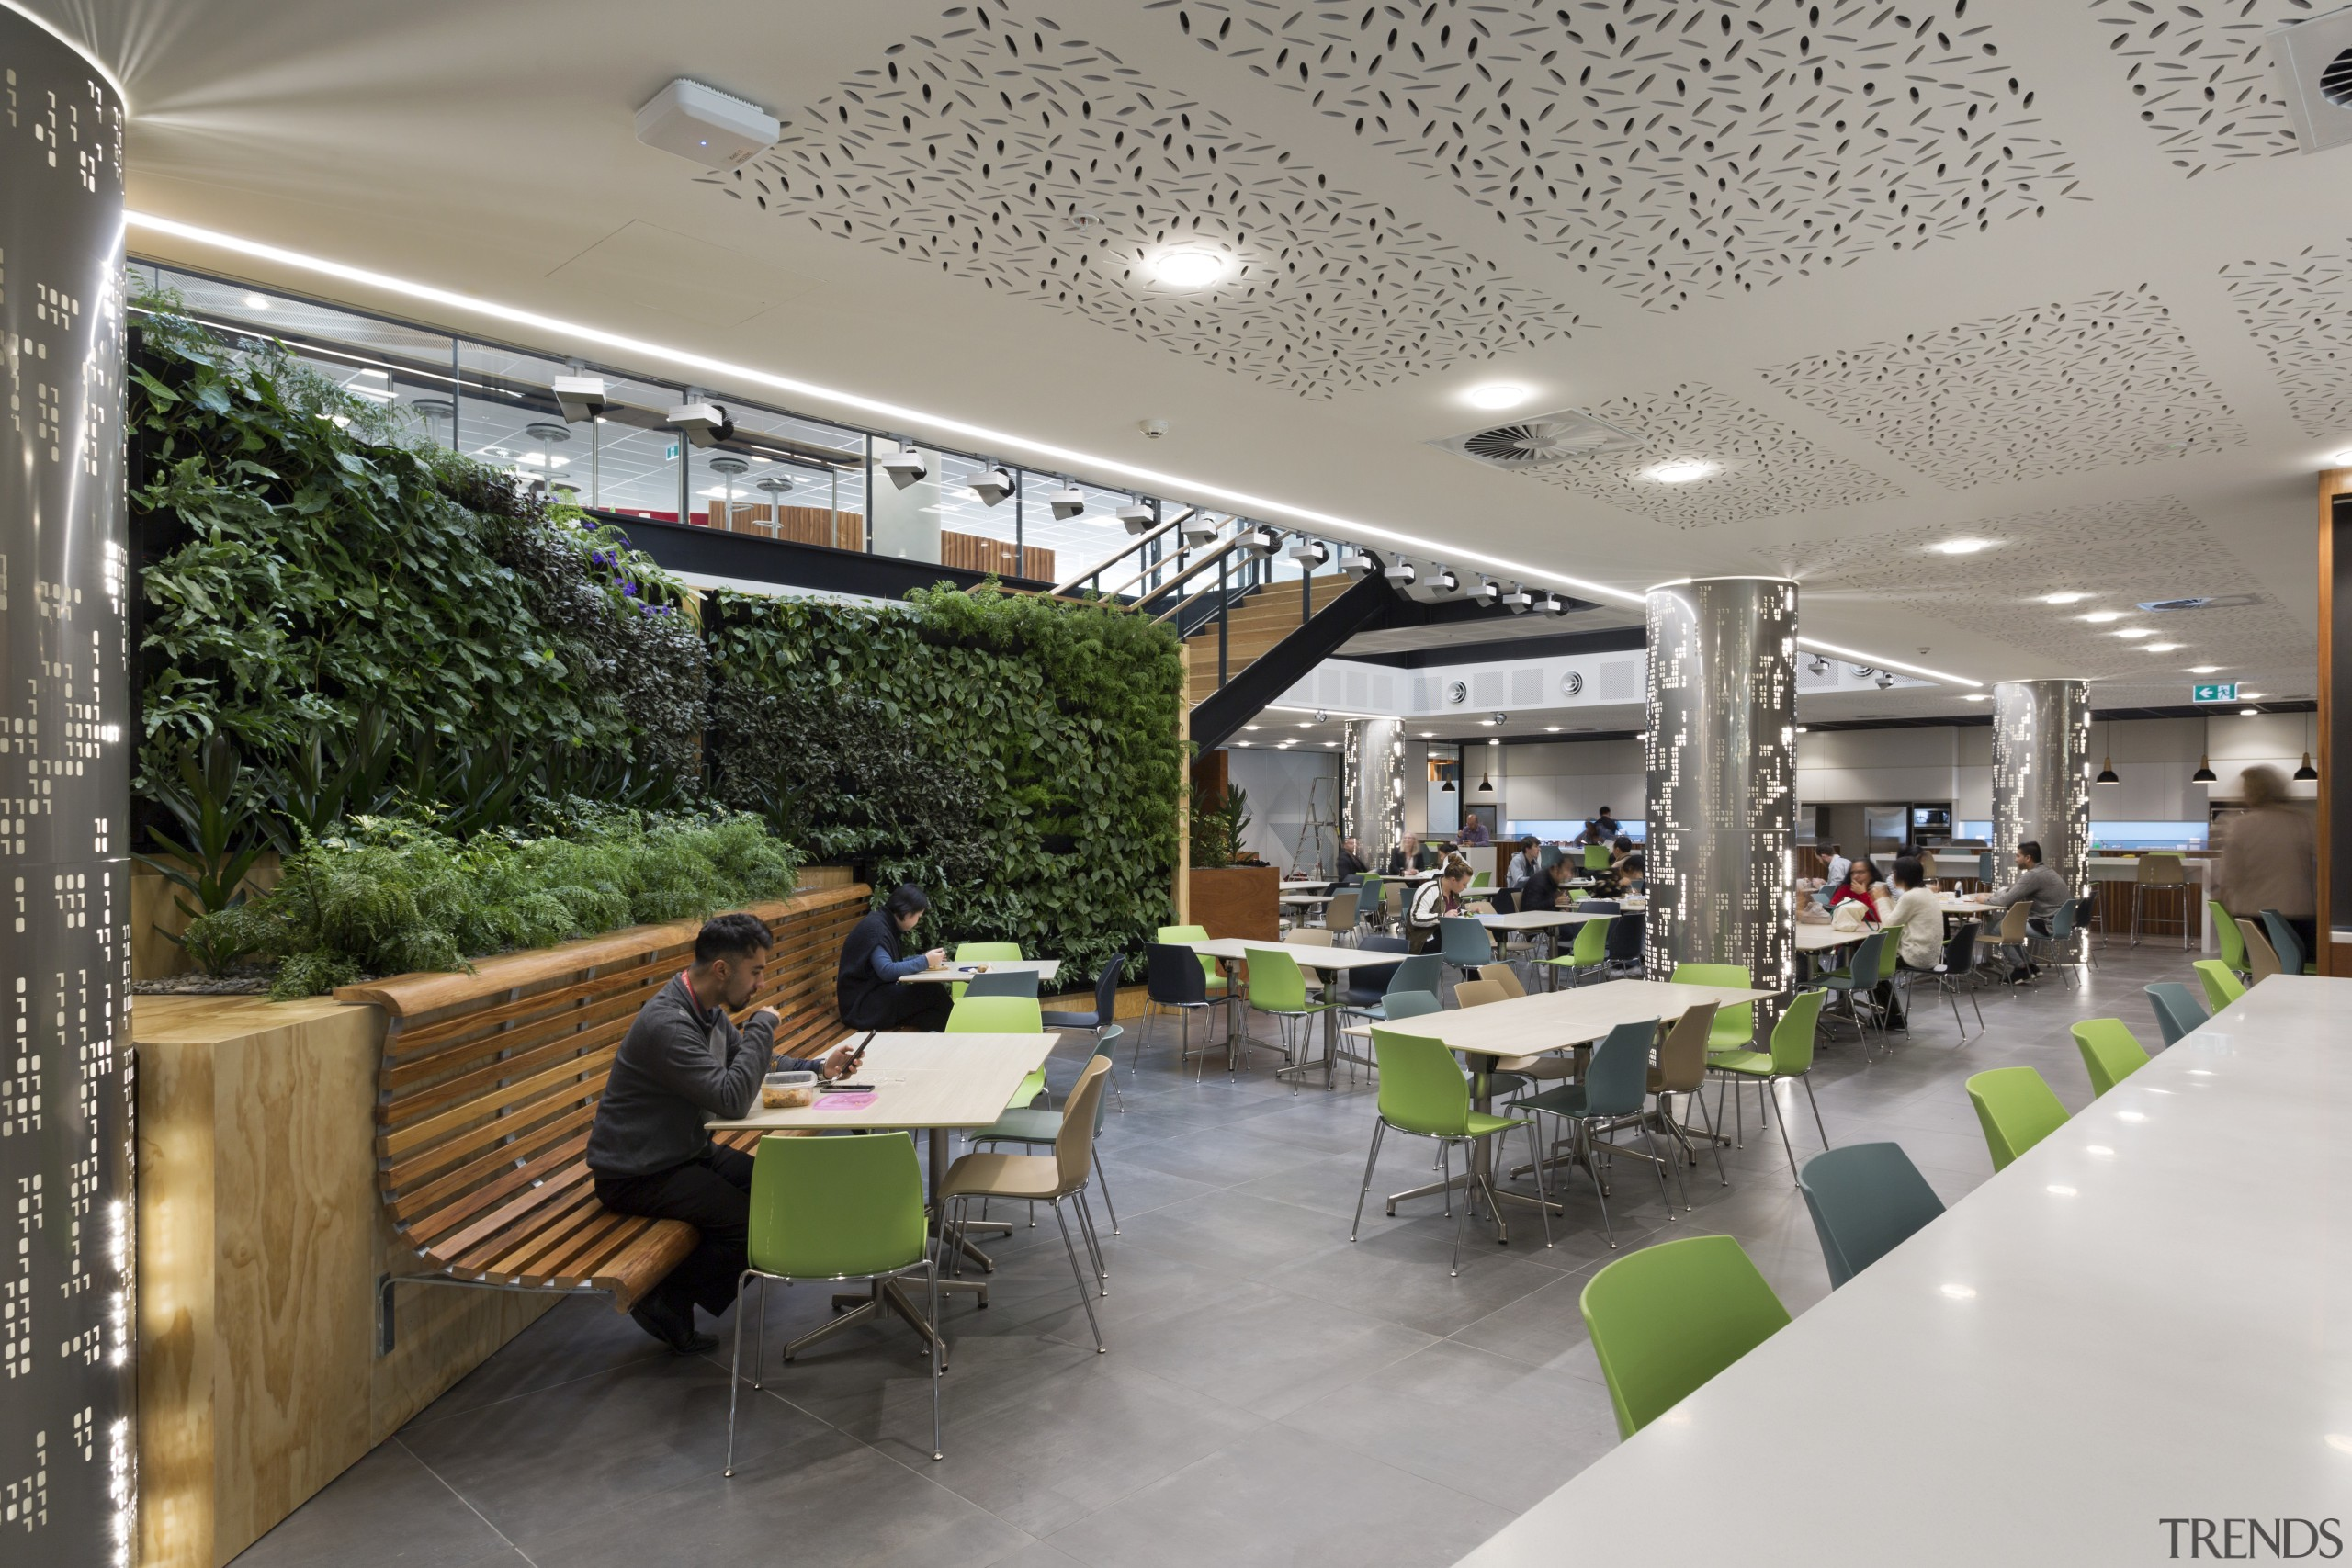 Level One of the Datacom offices is a interior design, gray